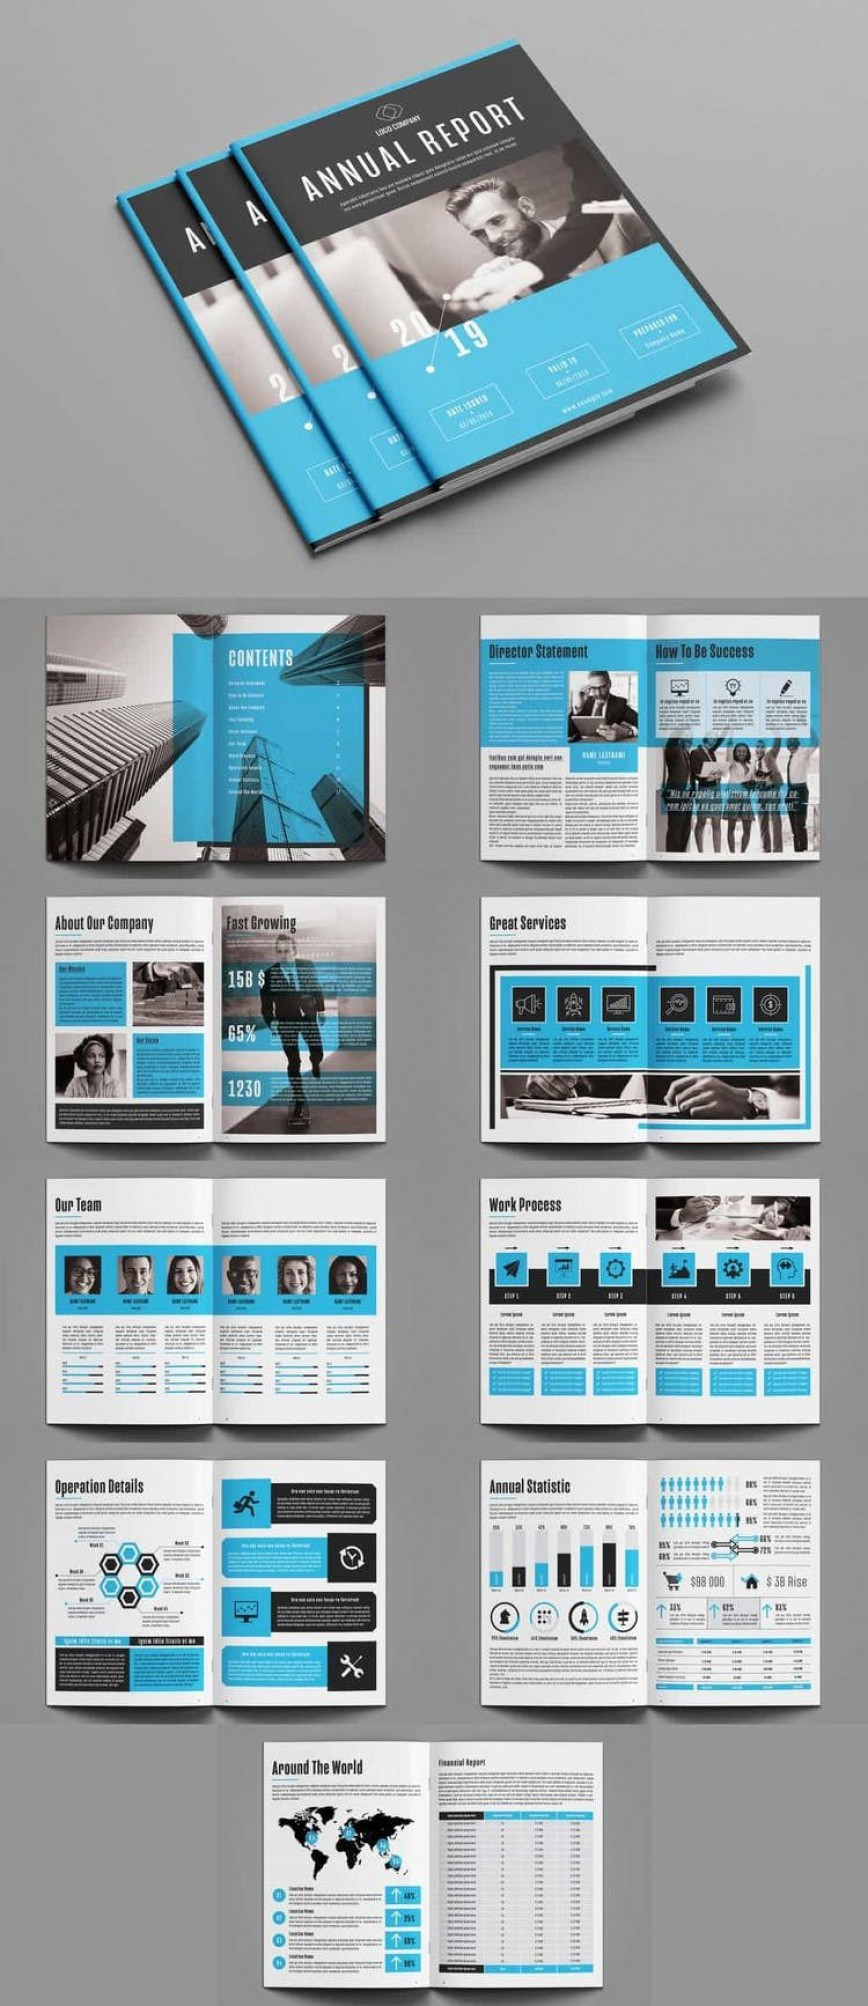 004 Shocking Annual Report Design Template Idea  Templates Free Download Indesign Vector